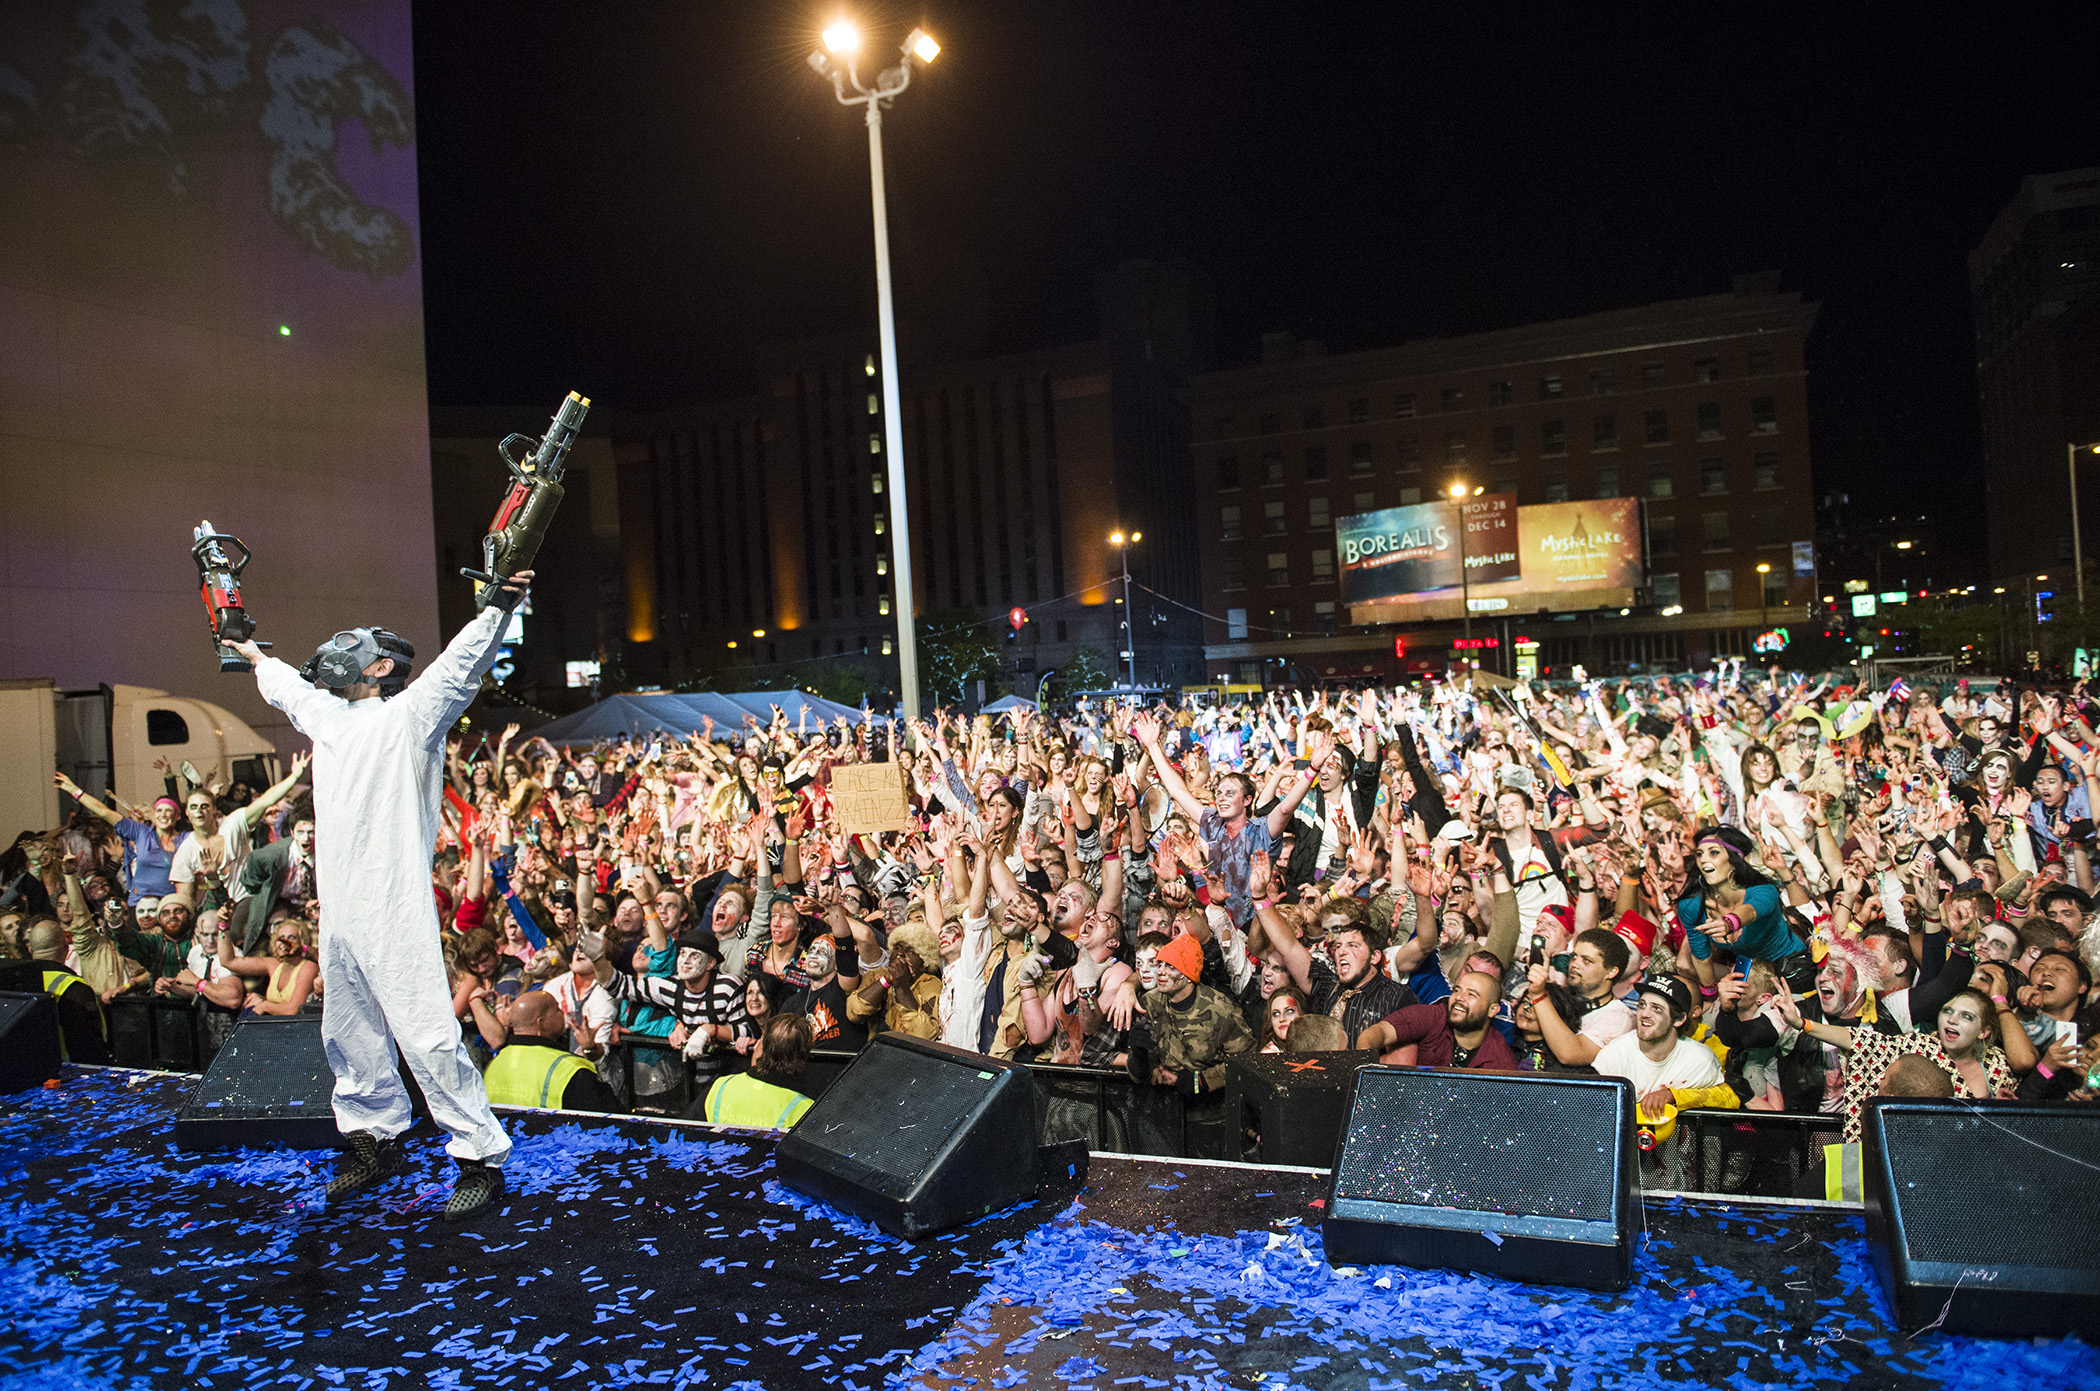 """Steve Aoki performs at the Zombie Pub Crawl X event on October 11, 2014 in downtown Minneapolis, MN. The event claimed the Guinness World Record for """"the largest gathering of zombies"""" with 15,458 participants attending."""